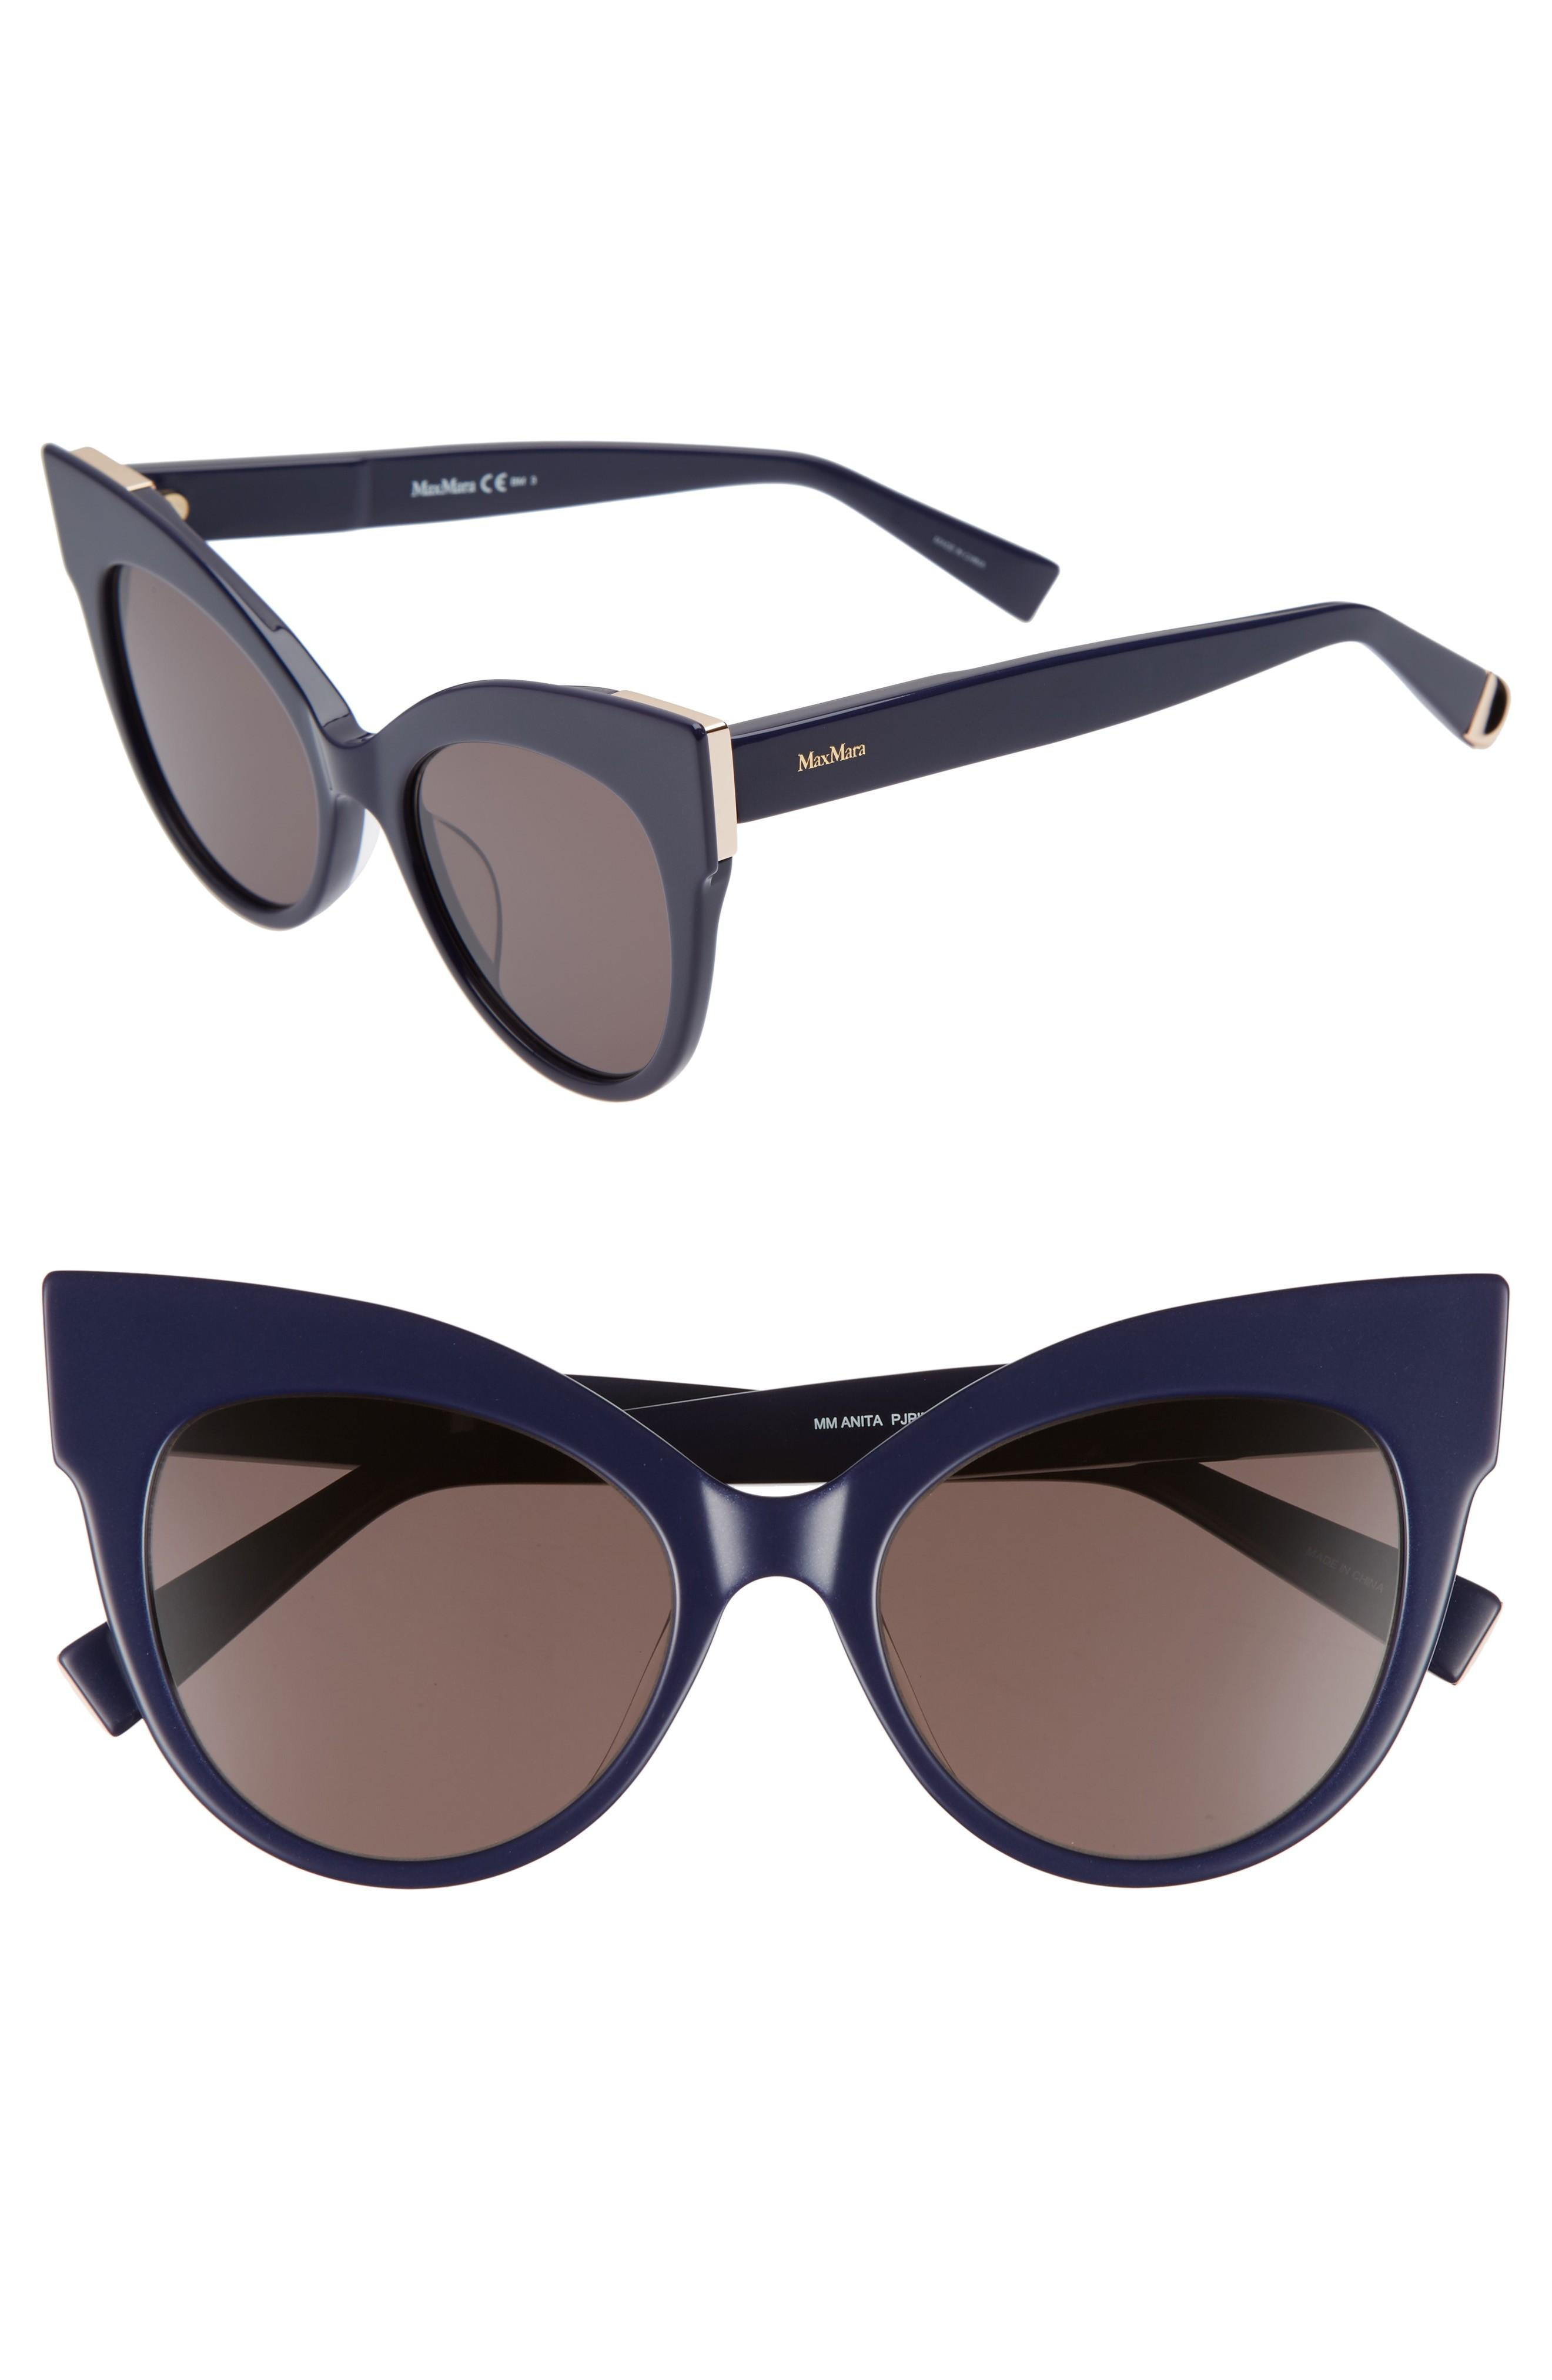 5276187ab6b Exaggerated angles accentuate the retro-inspired cat-eye silhouette of  statement-making shades. Style Name  Max Mara Anita 52Mm Cat Eye Sunglasses.